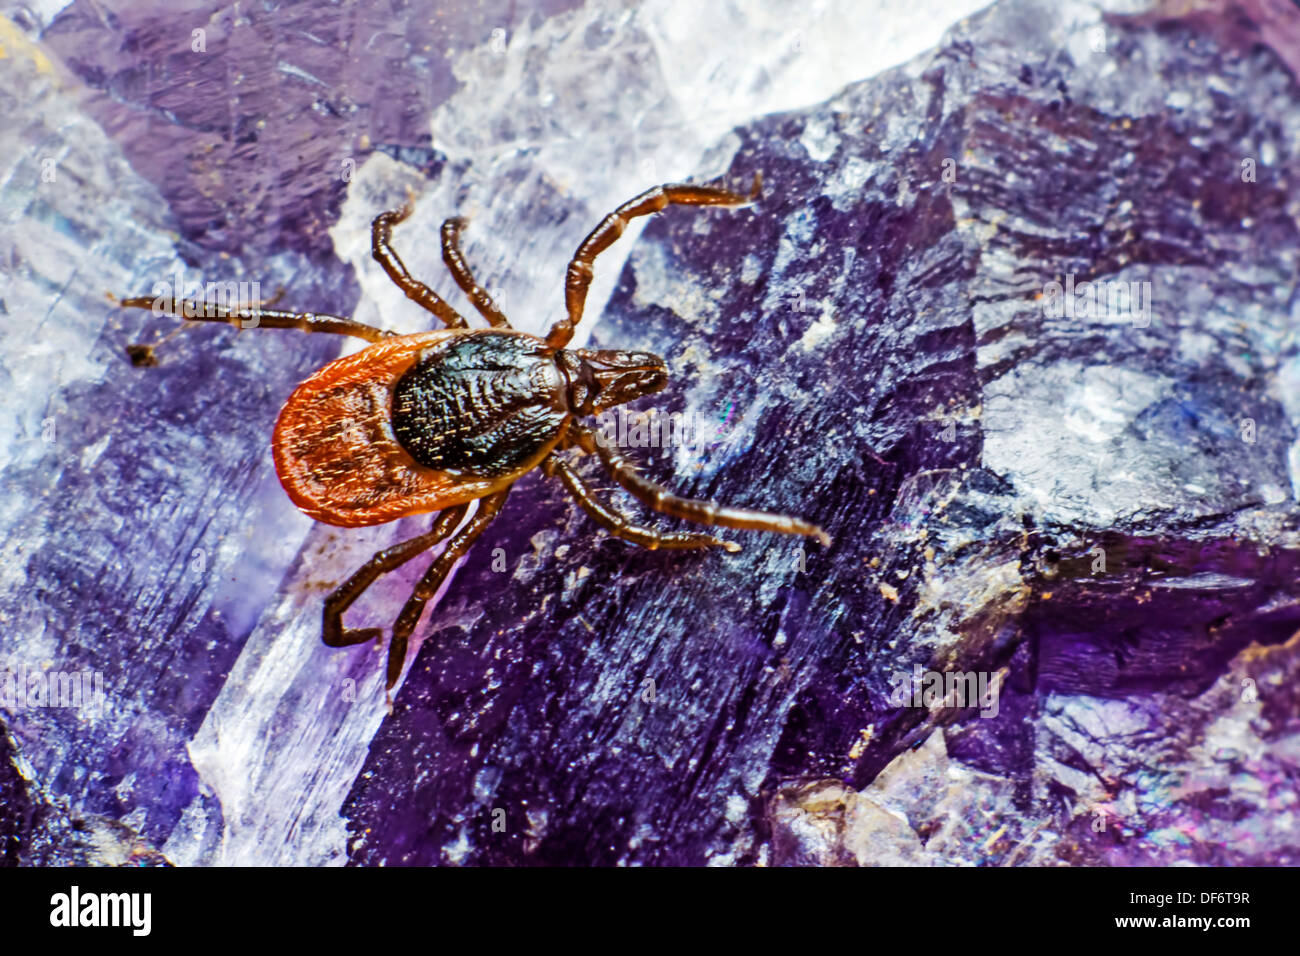 The castor bean tick (Ixodes ricinus) - Stock Image